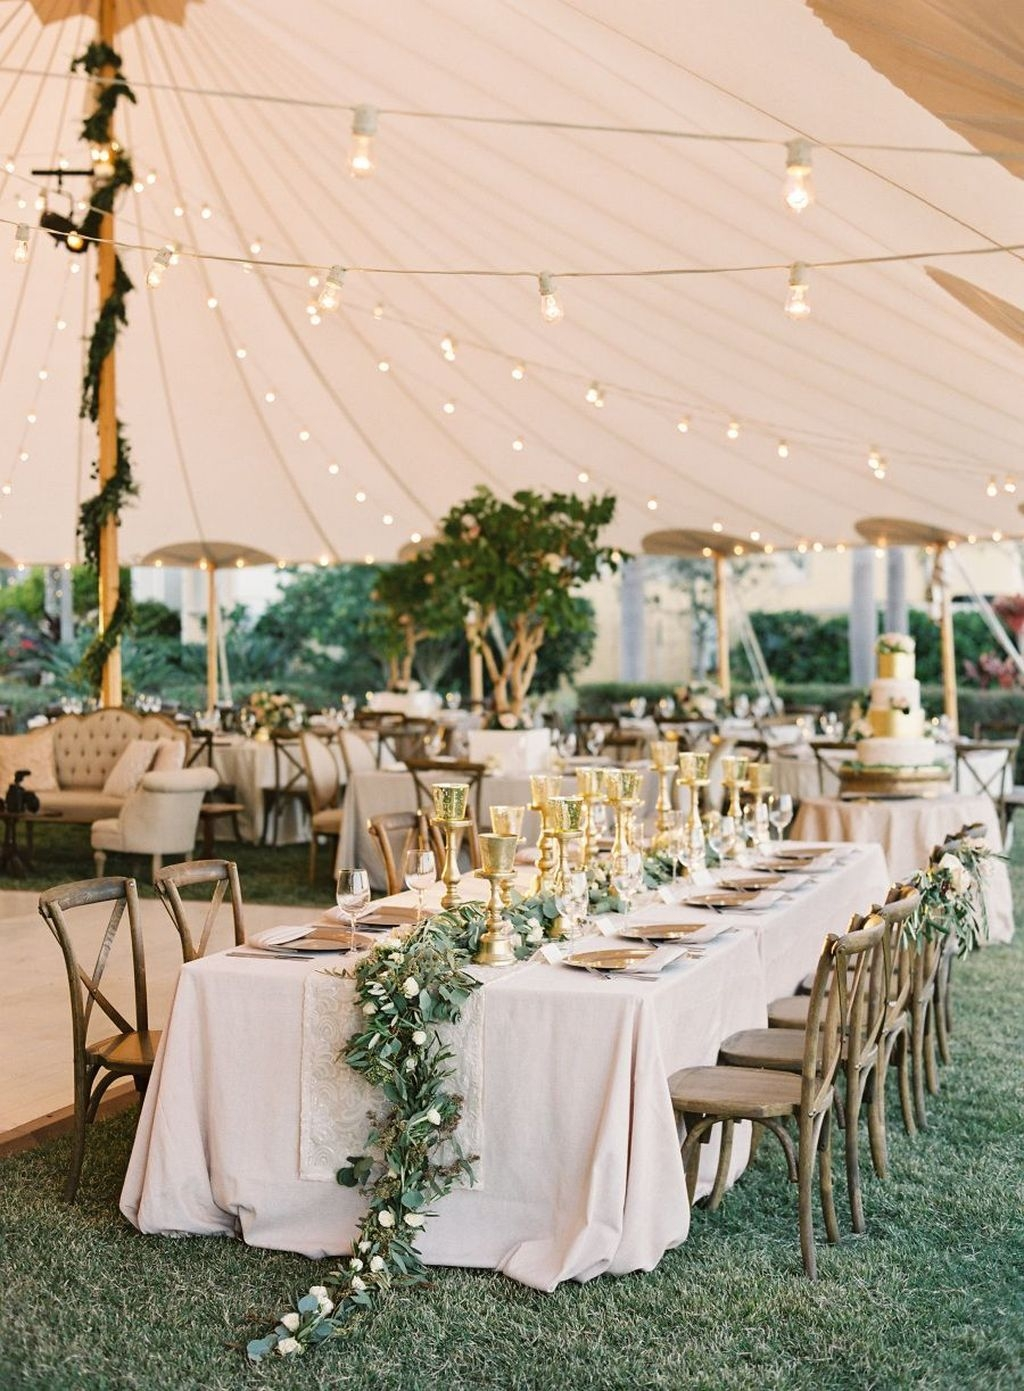 Beautiful Backyard Wedding Decor Ideas To Get A Romantic Impression 08